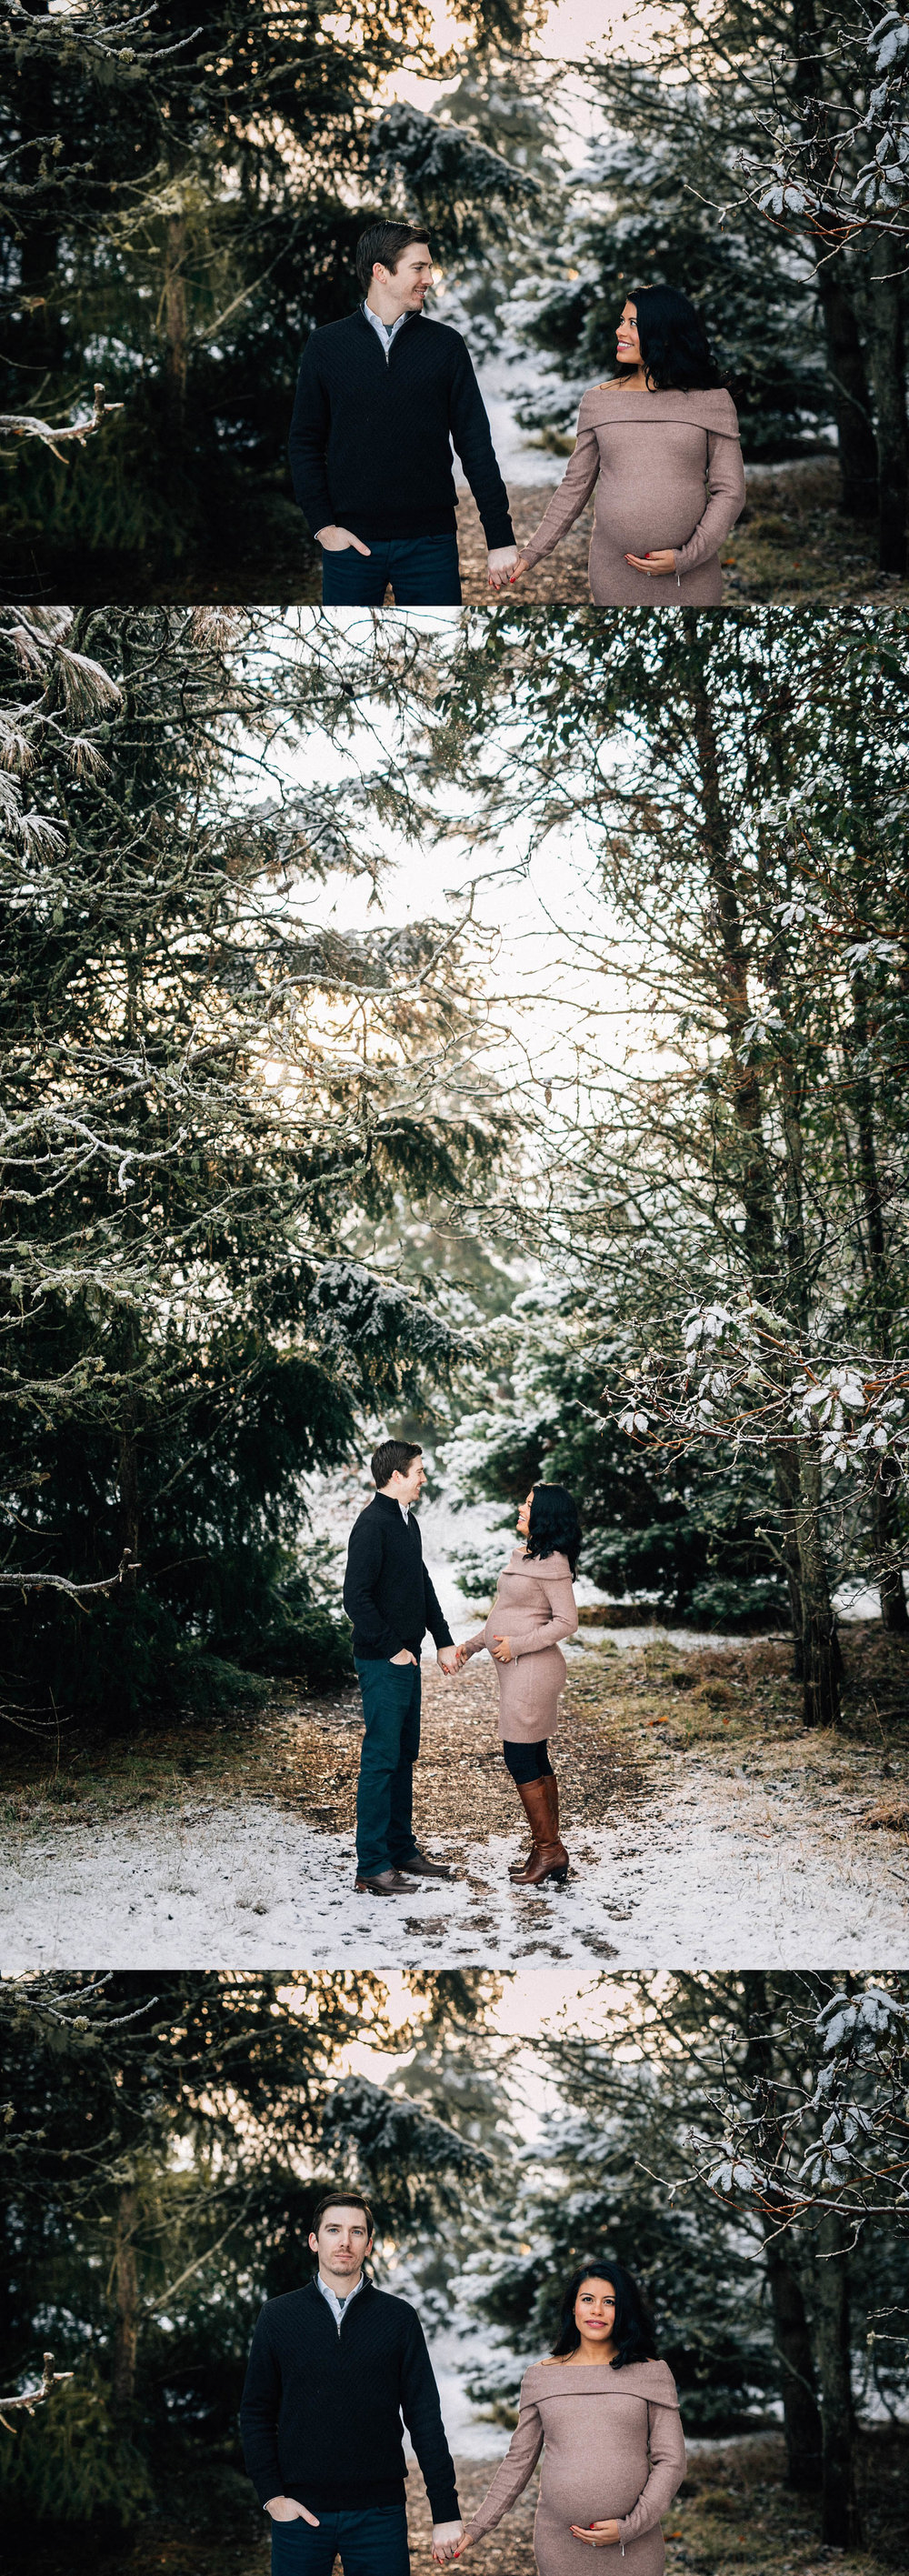 ashley vos seattle maternity wedding photographer lifestyle photography pnw-9.jpg